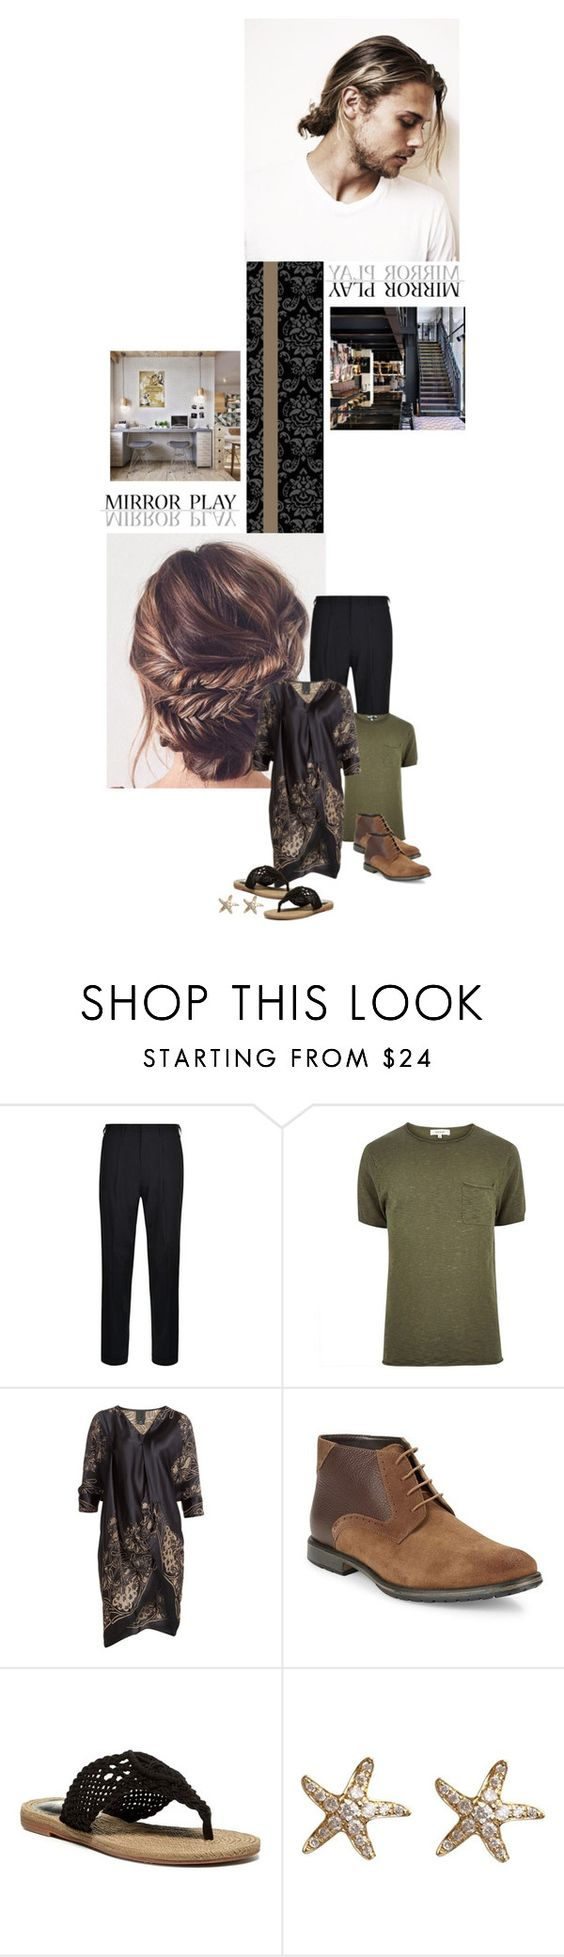 """""""Male and female energy"""" by redheadlass ❤ liked on Polyvore featuring DKNY, River Island, Anna Sui, BLACK BROWN 1826, MIA and Annoushka"""